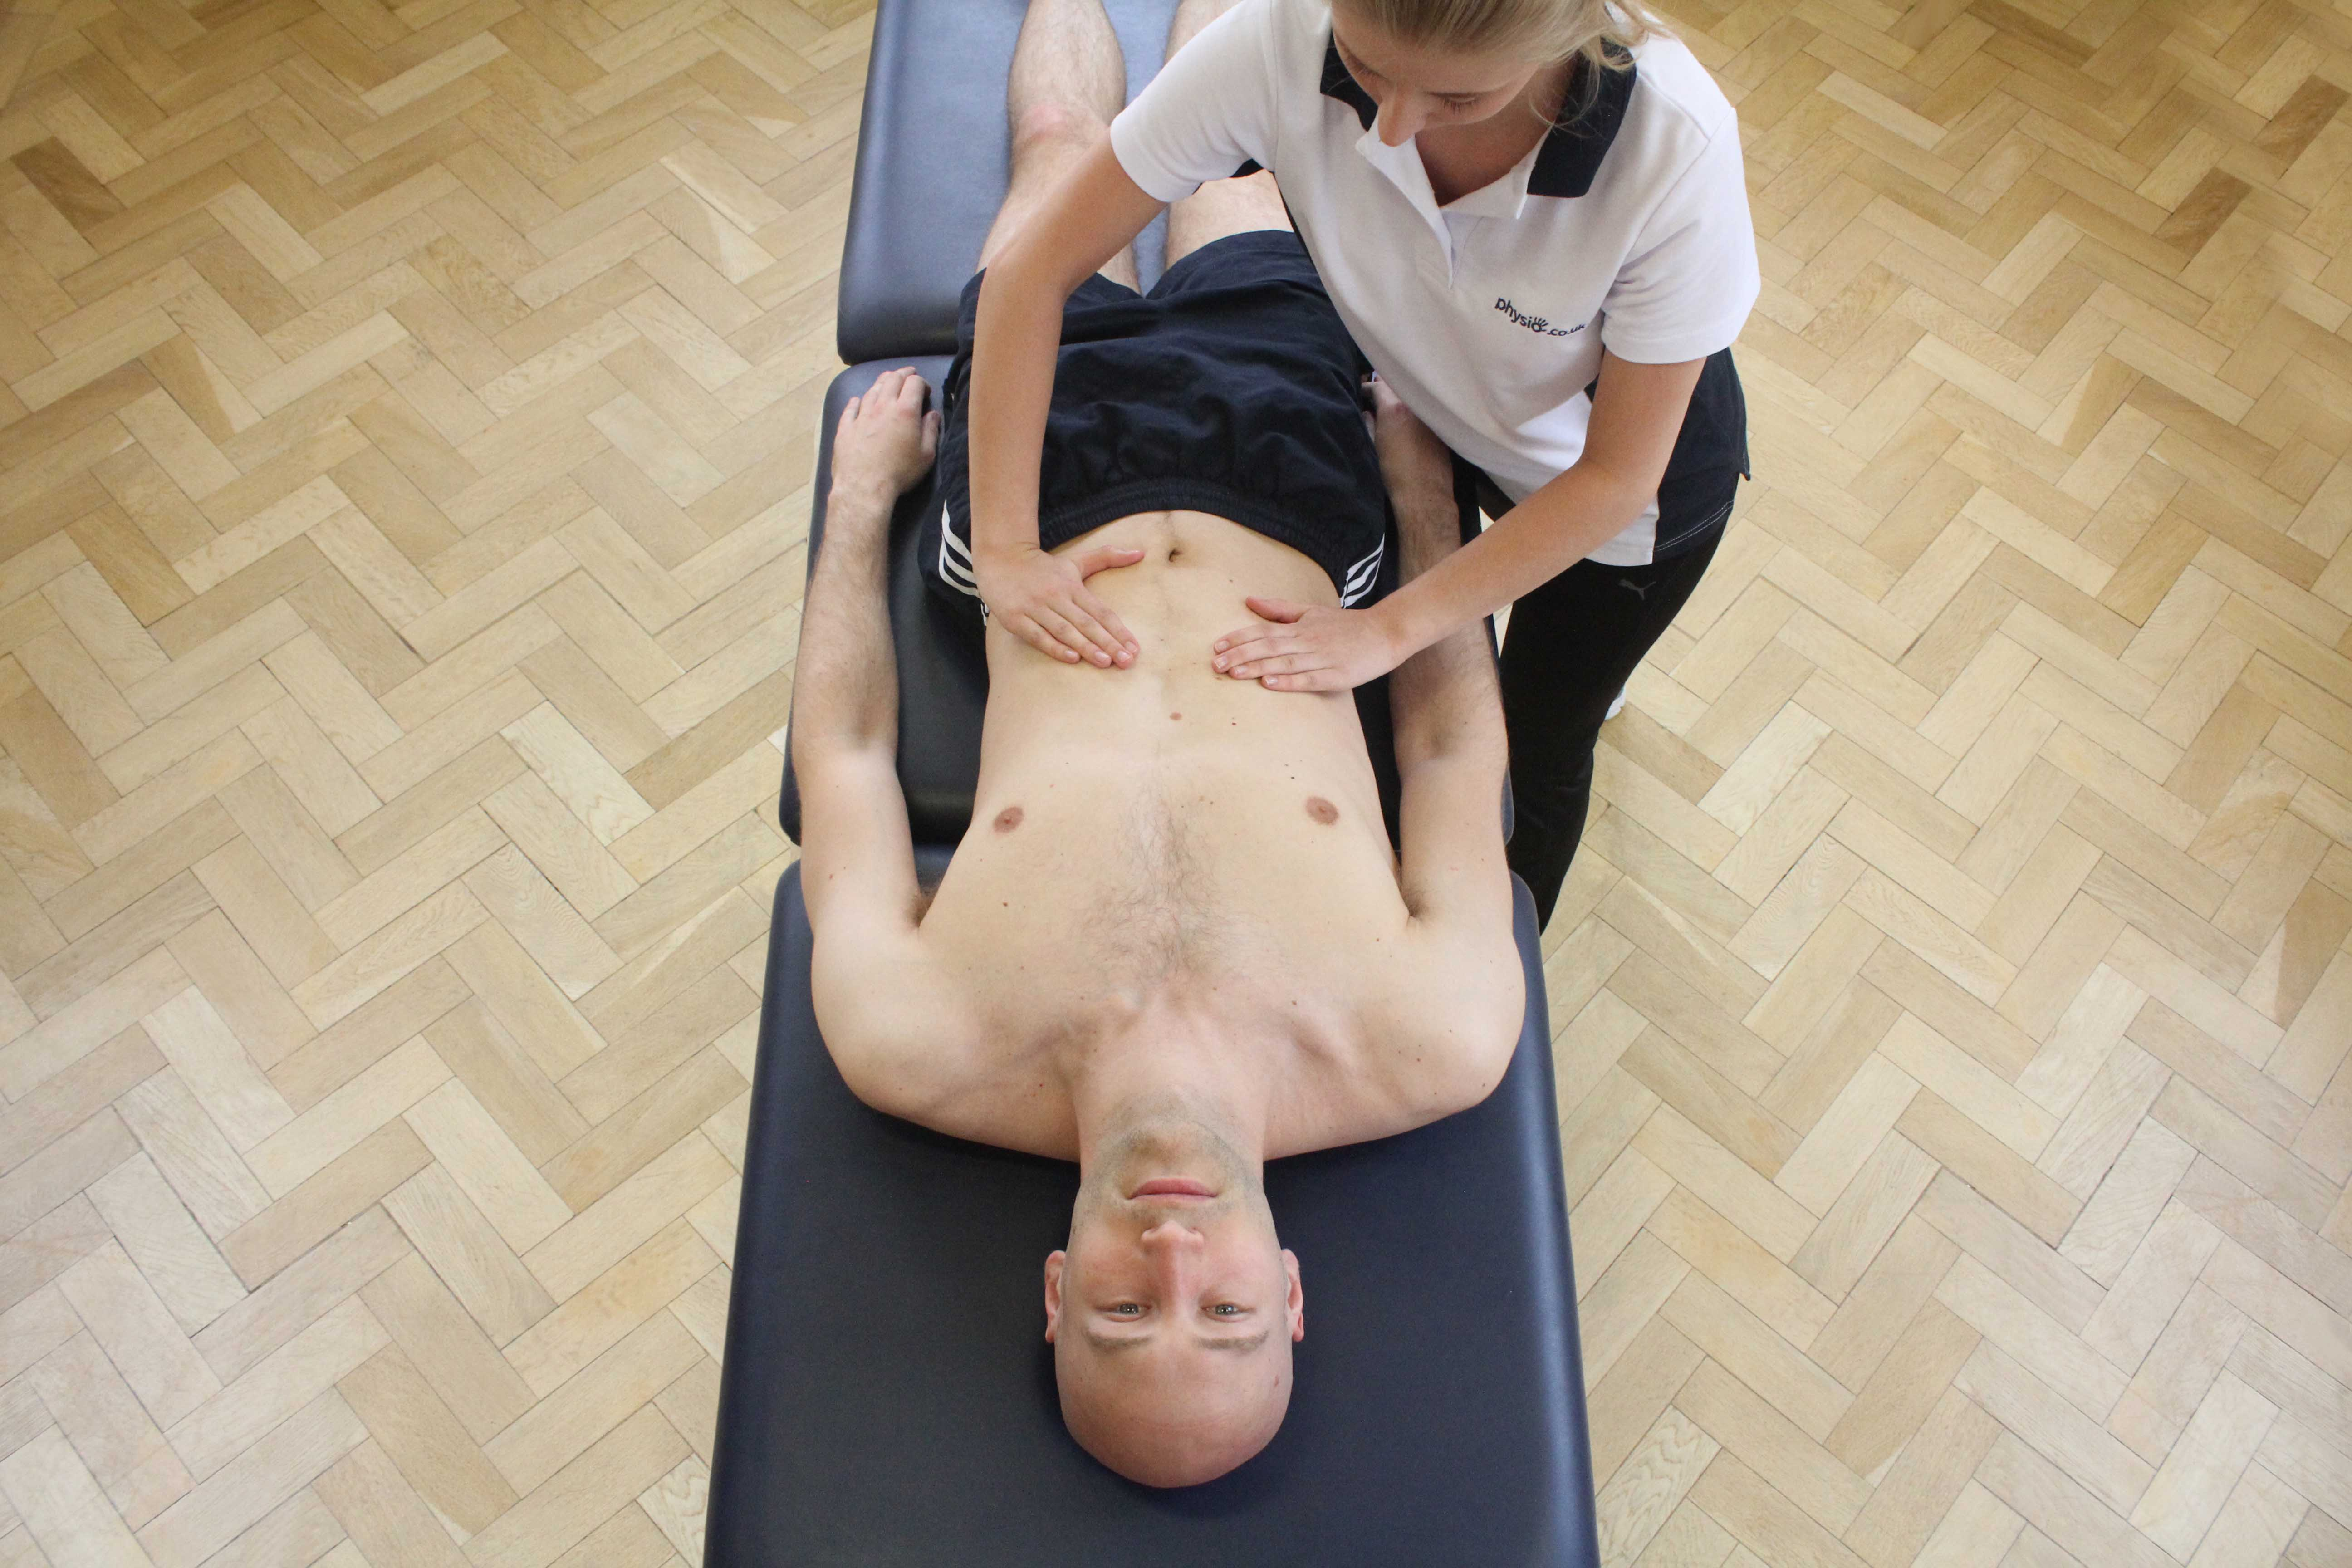 soft tissue massage of the abdominal muscles by a specilaist massage therapist